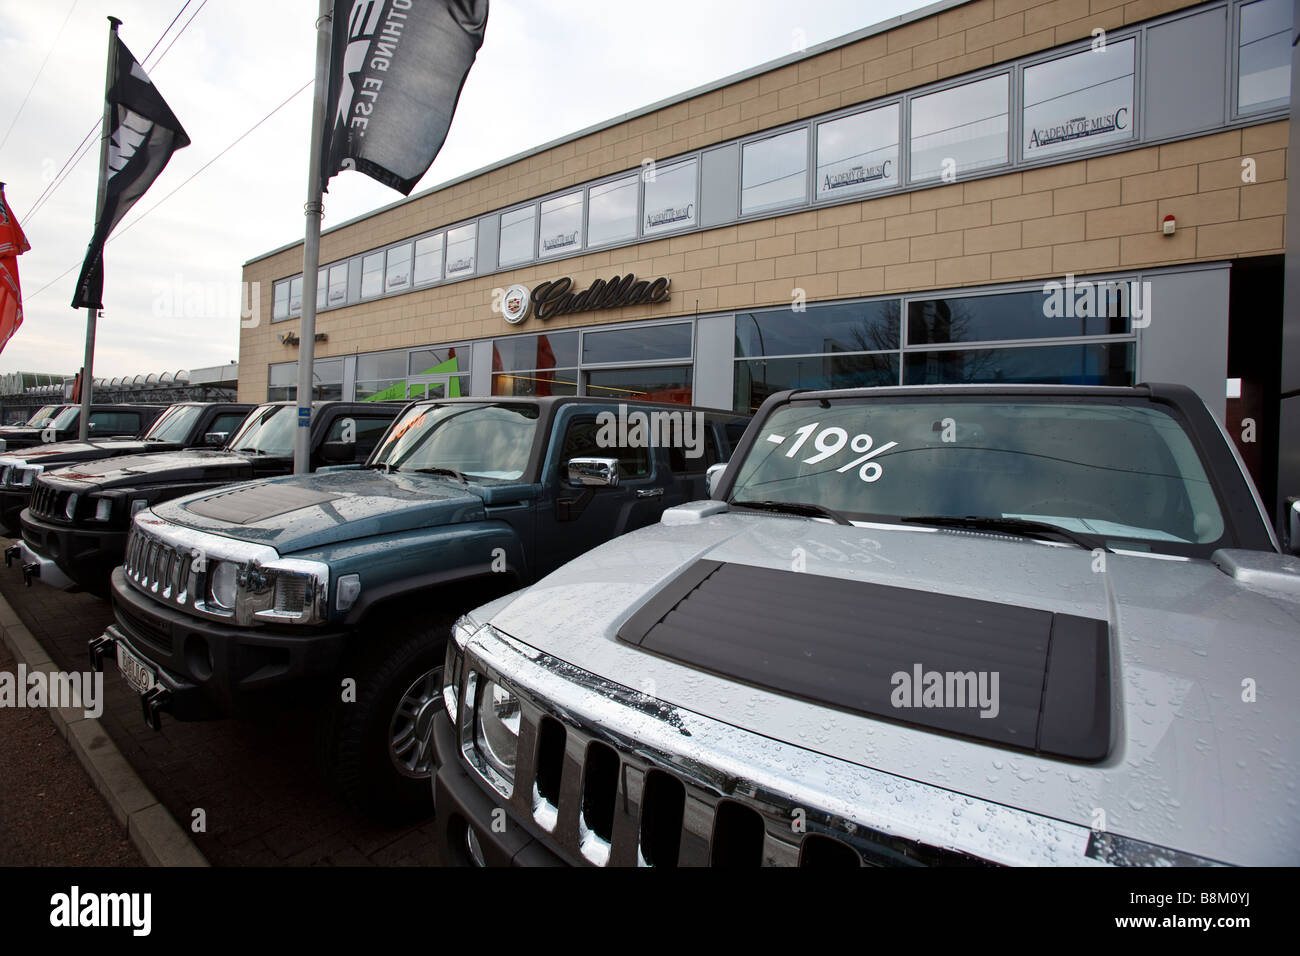 Hummer trucks made by General Motors are seen on a dealer's lot in Hamburg, Germany - Stock Image